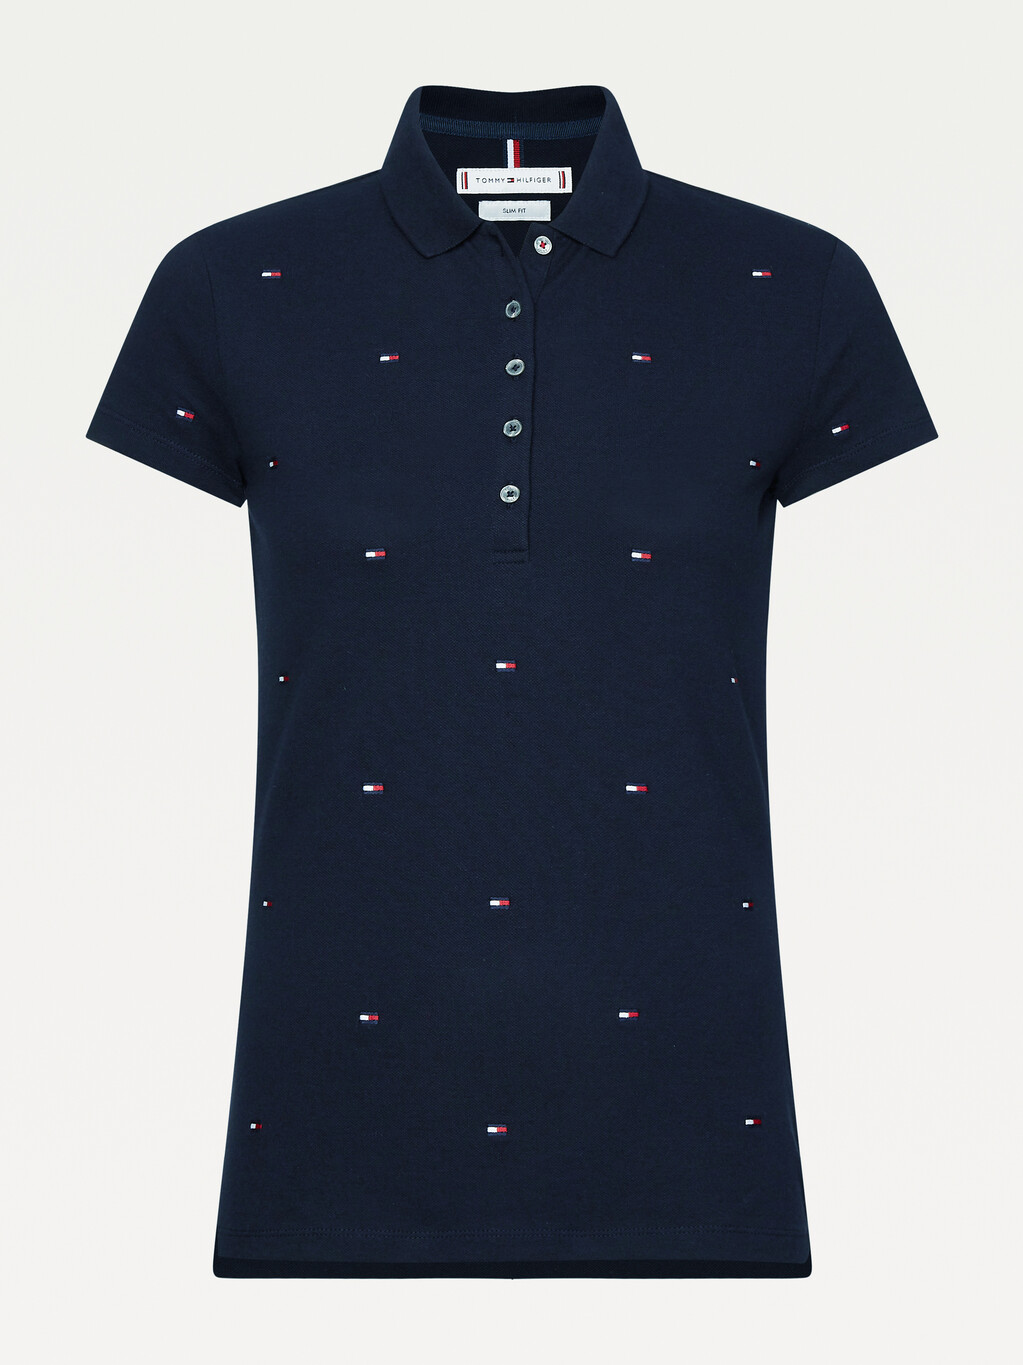 Flag Embroidery Slim Fit Polo